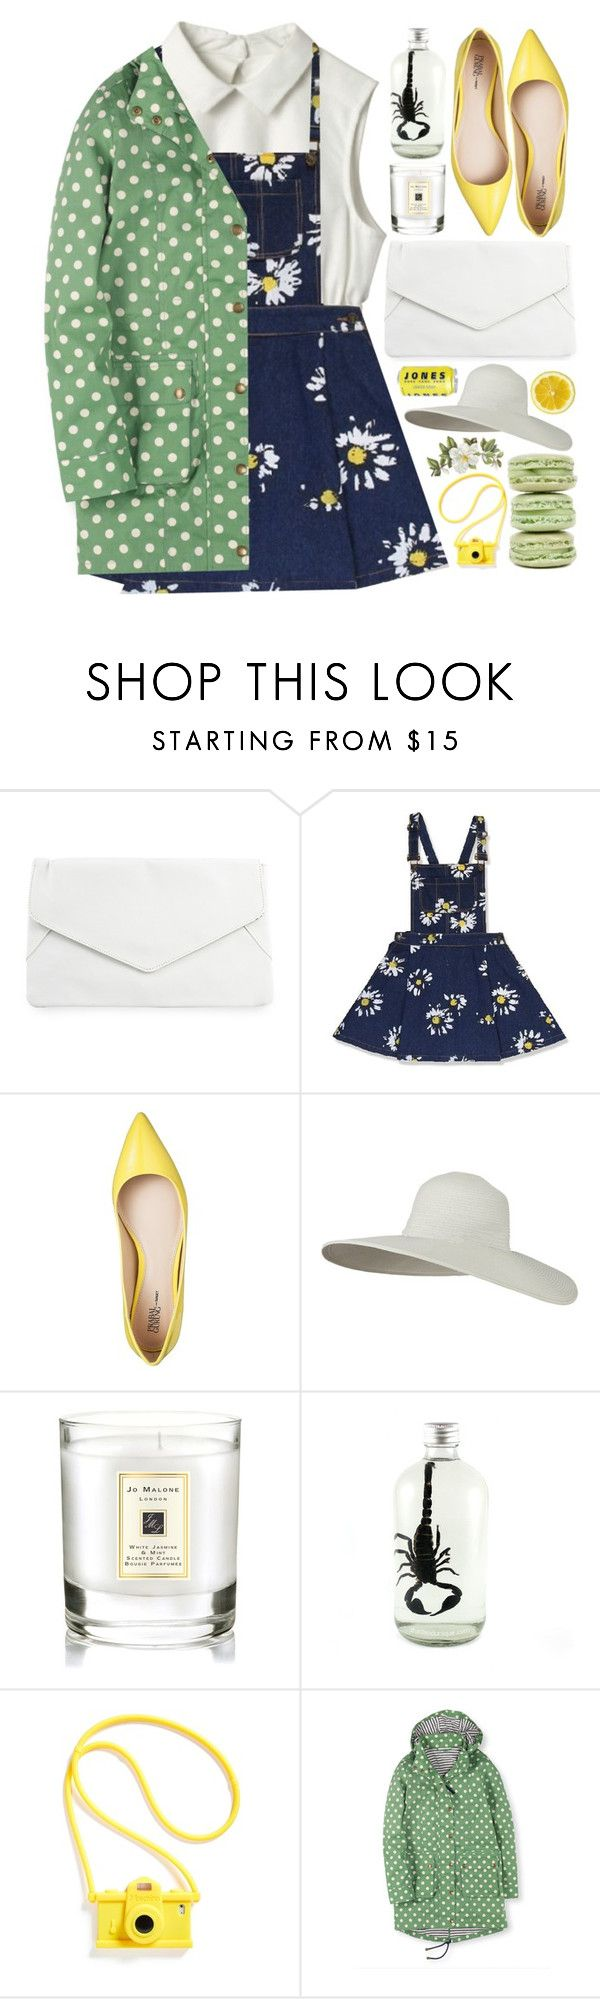 """""""Garden Party, Ricky Nelson"""" by blendasantos ❤ liked on Polyvore featuring Rut&Circle, Prabal Gurung, Jo Malone, Moschino, Boden and Ladurée"""